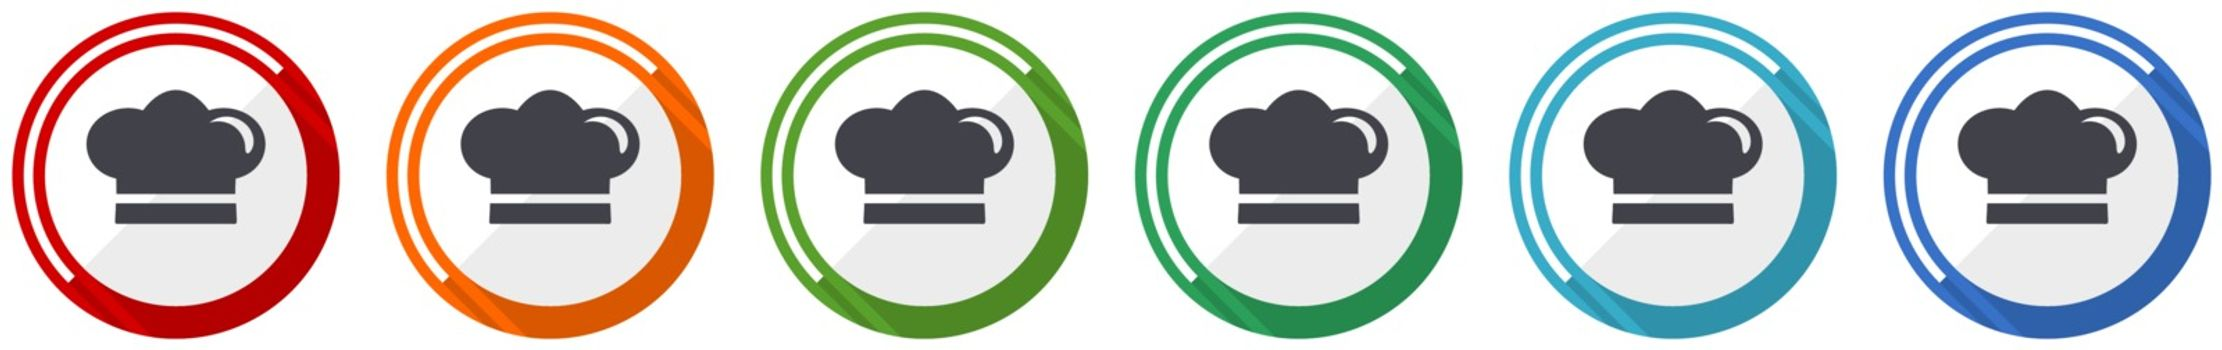 Cook icon set, flat design vector illustration in 6 colors options for webdesign and mobile applications